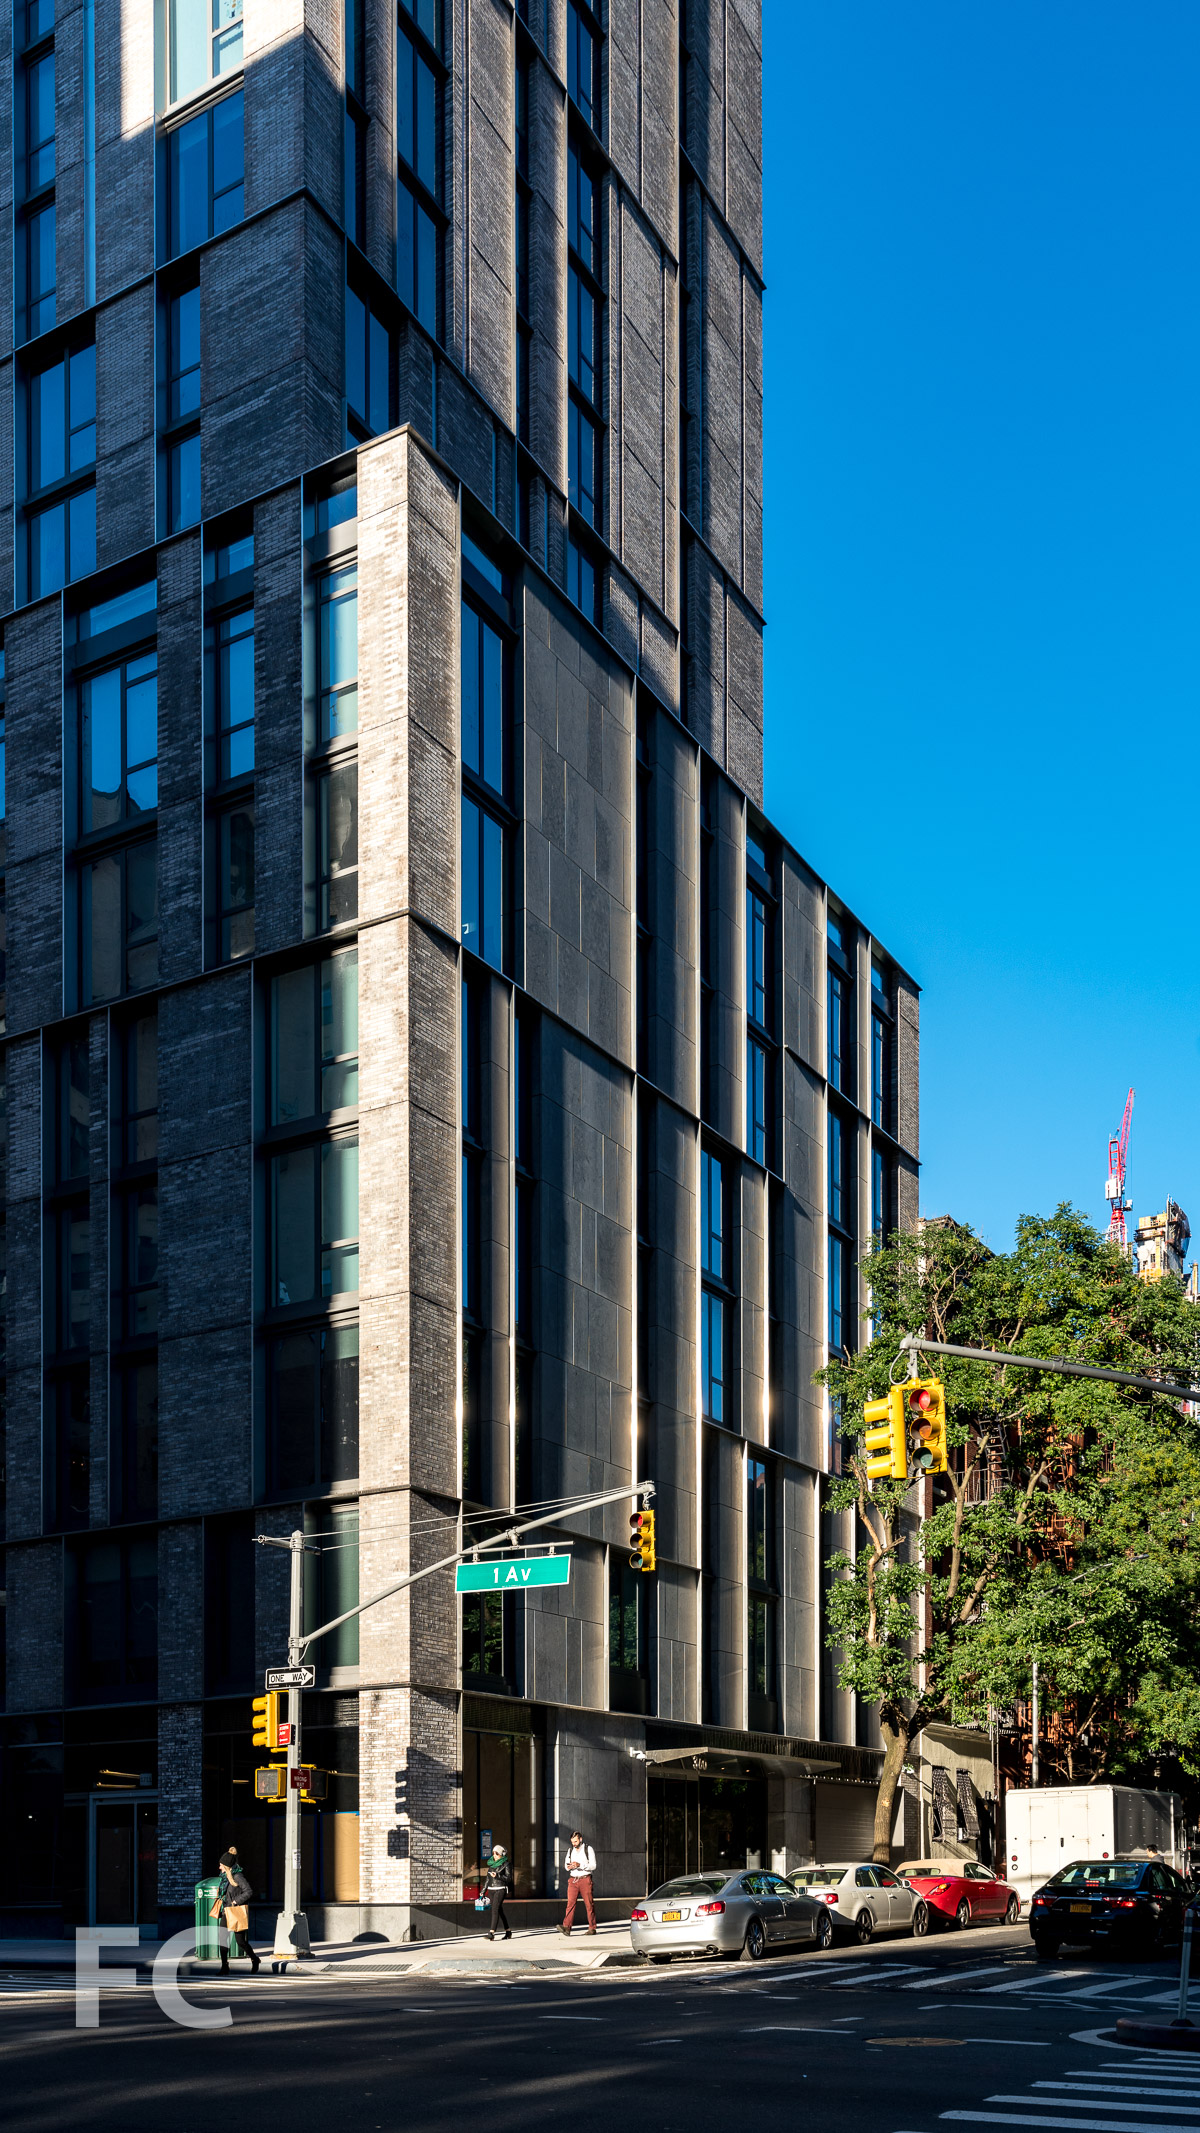 North facade at East 89th Street.